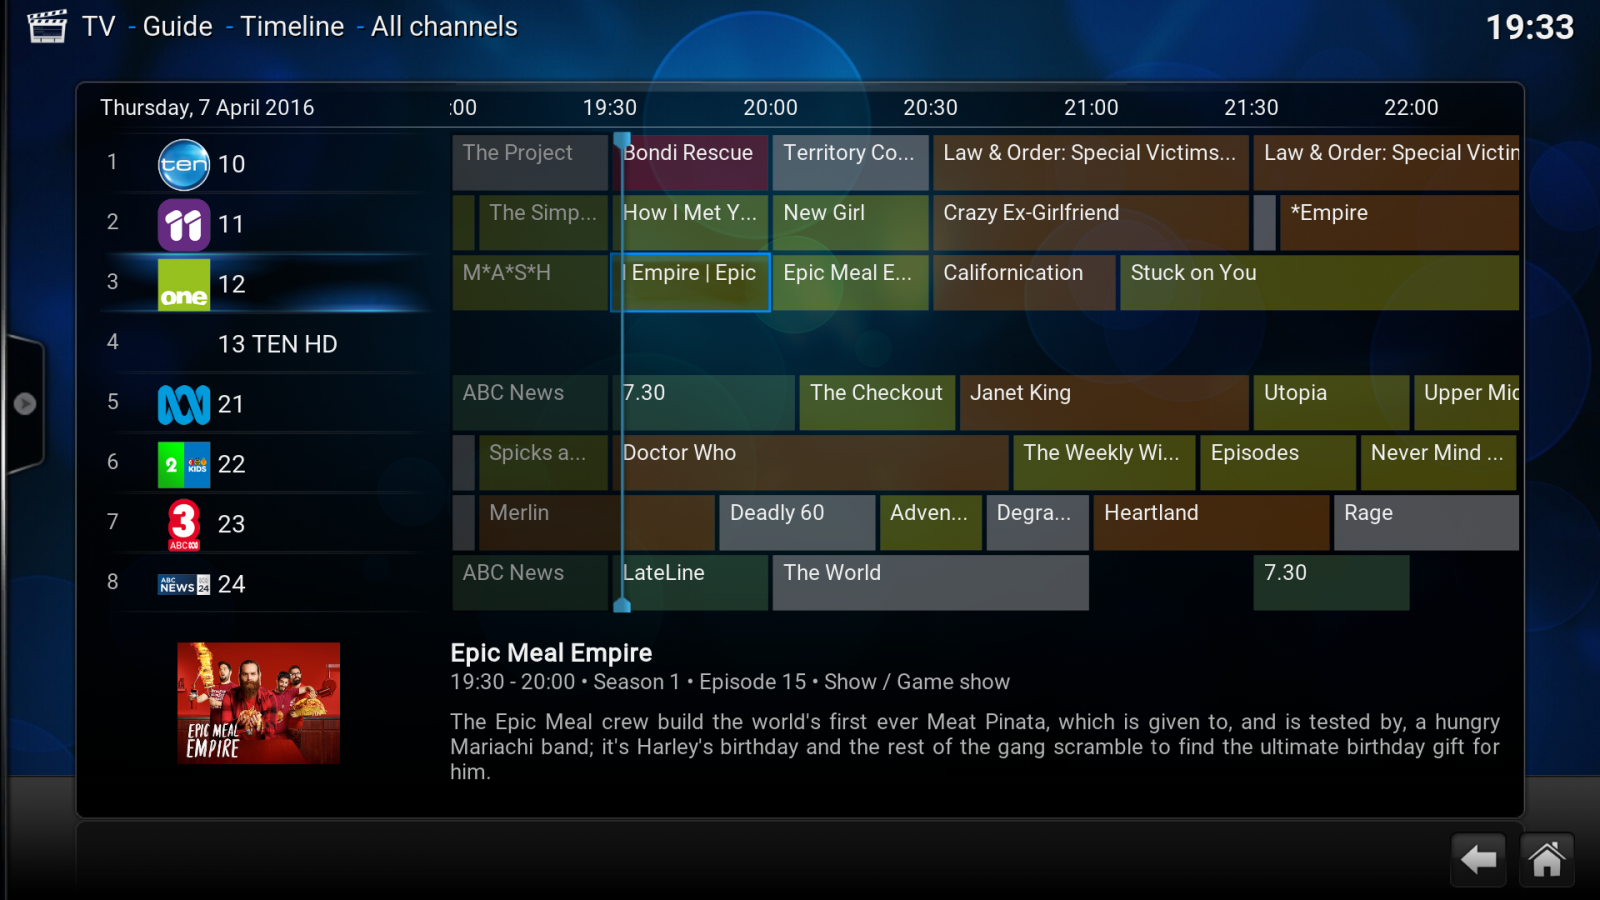 Ability to use hdhomerun tvguide data as kodi now uses it - Live TV